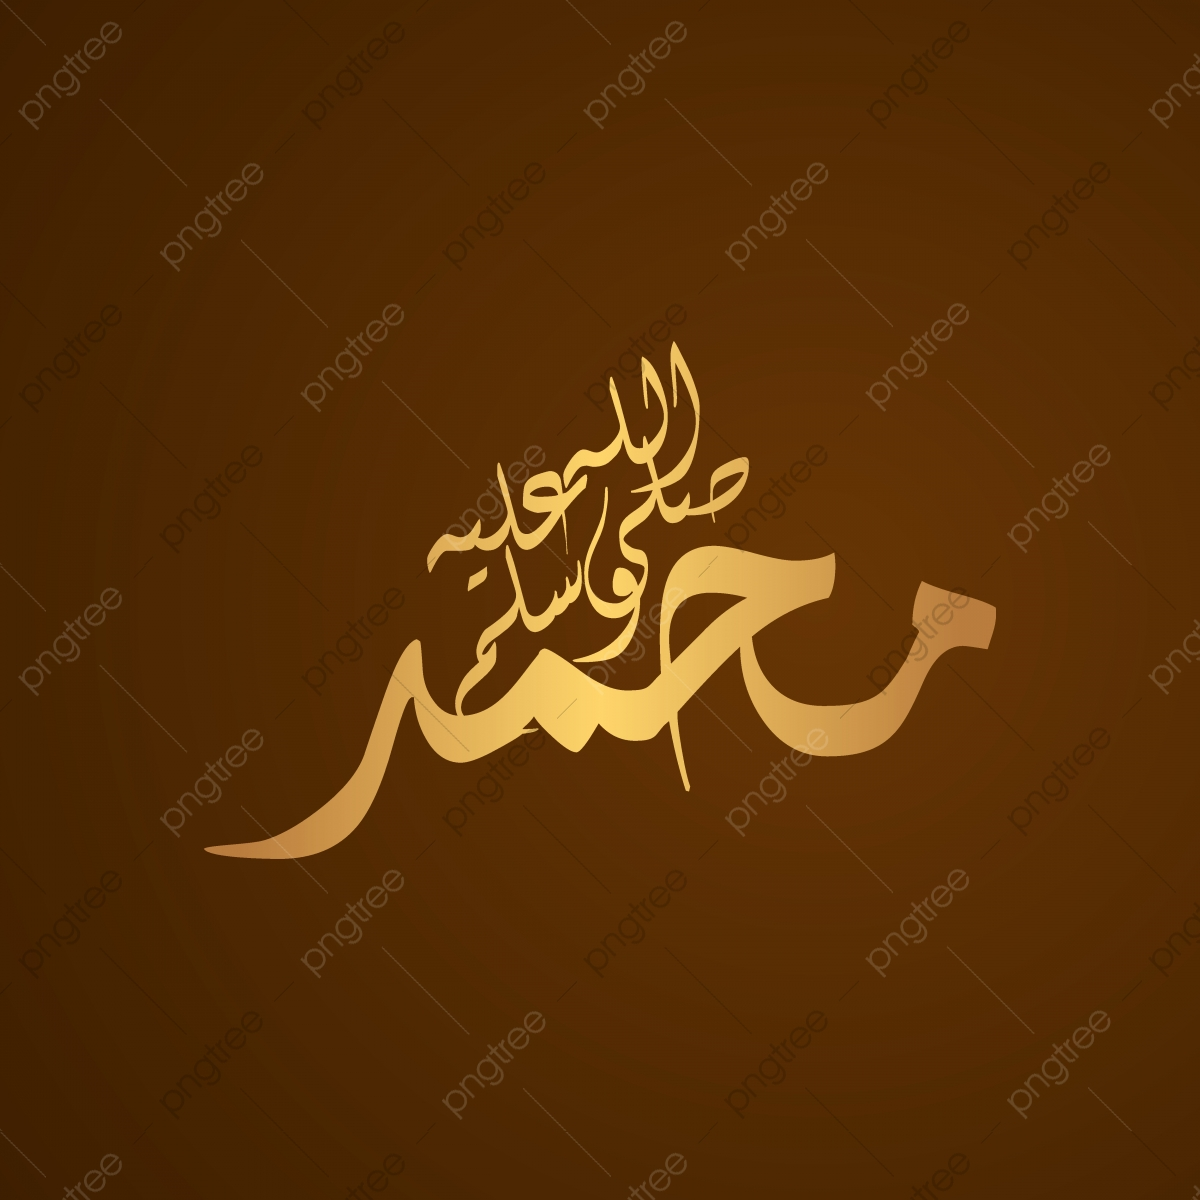 Name Of Muhammad Prophet Calligraphy With Gold And Brown